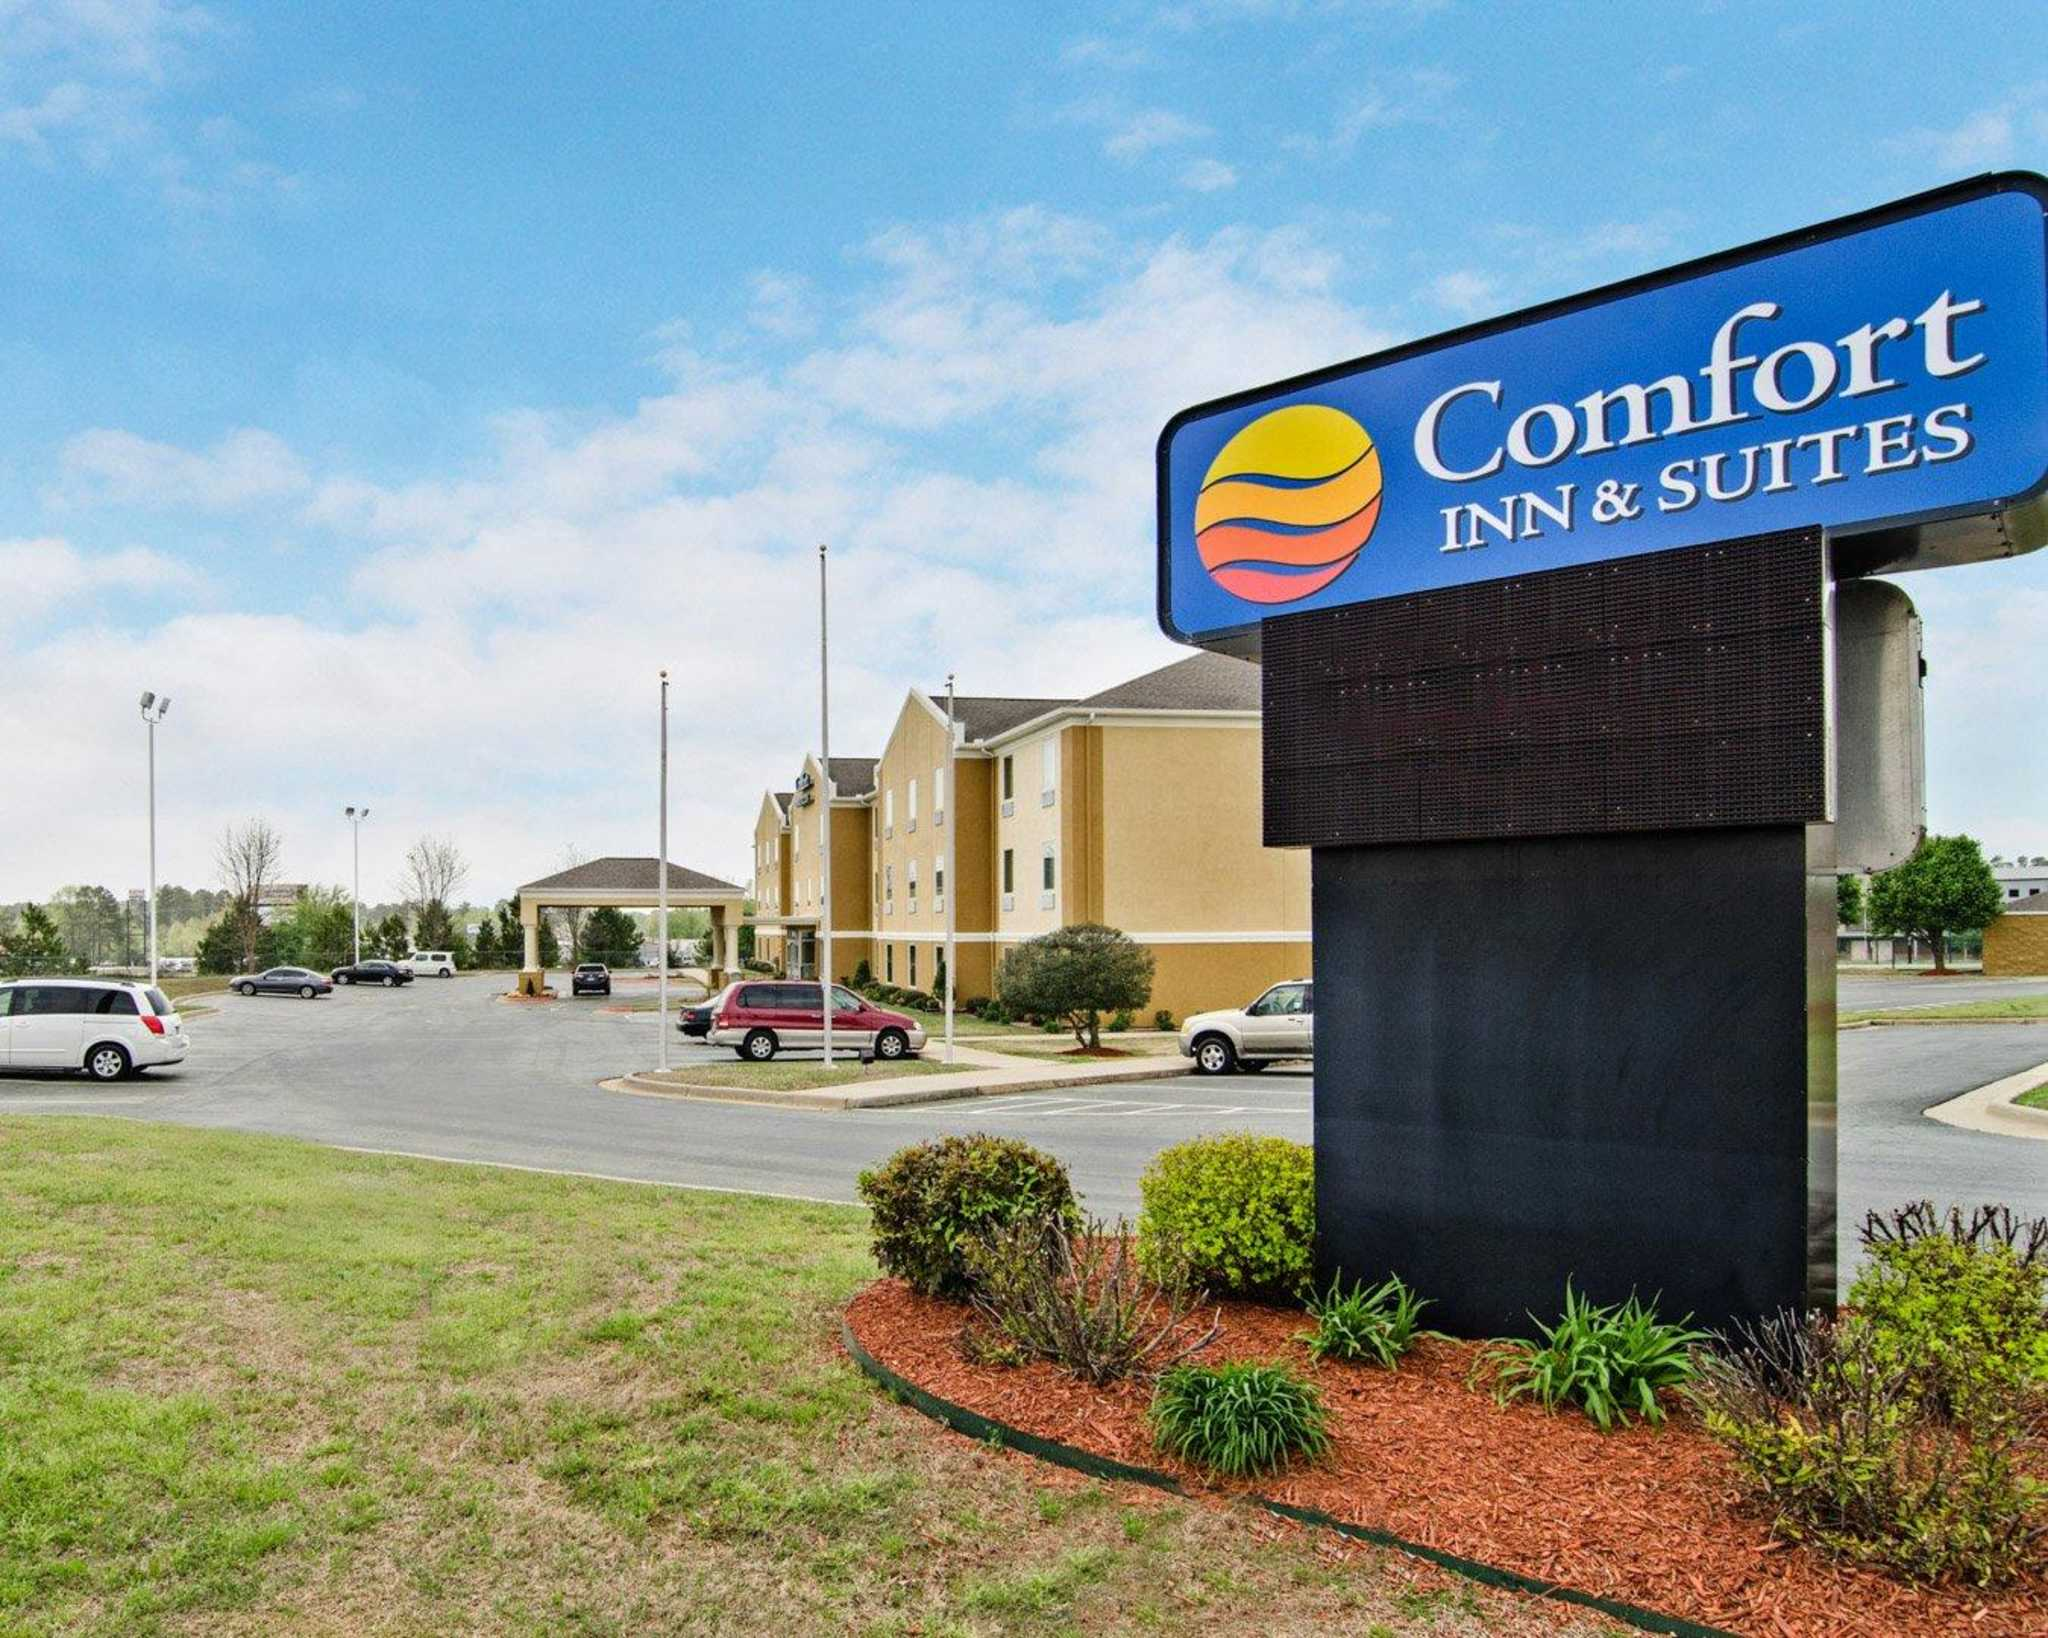 Book at Comfort Inn and stay 3 or more nights and save up to 25% off now at participating Comfort Inn hotels. Offer ends June 1, This coupon expired on 06/01/ CDT.